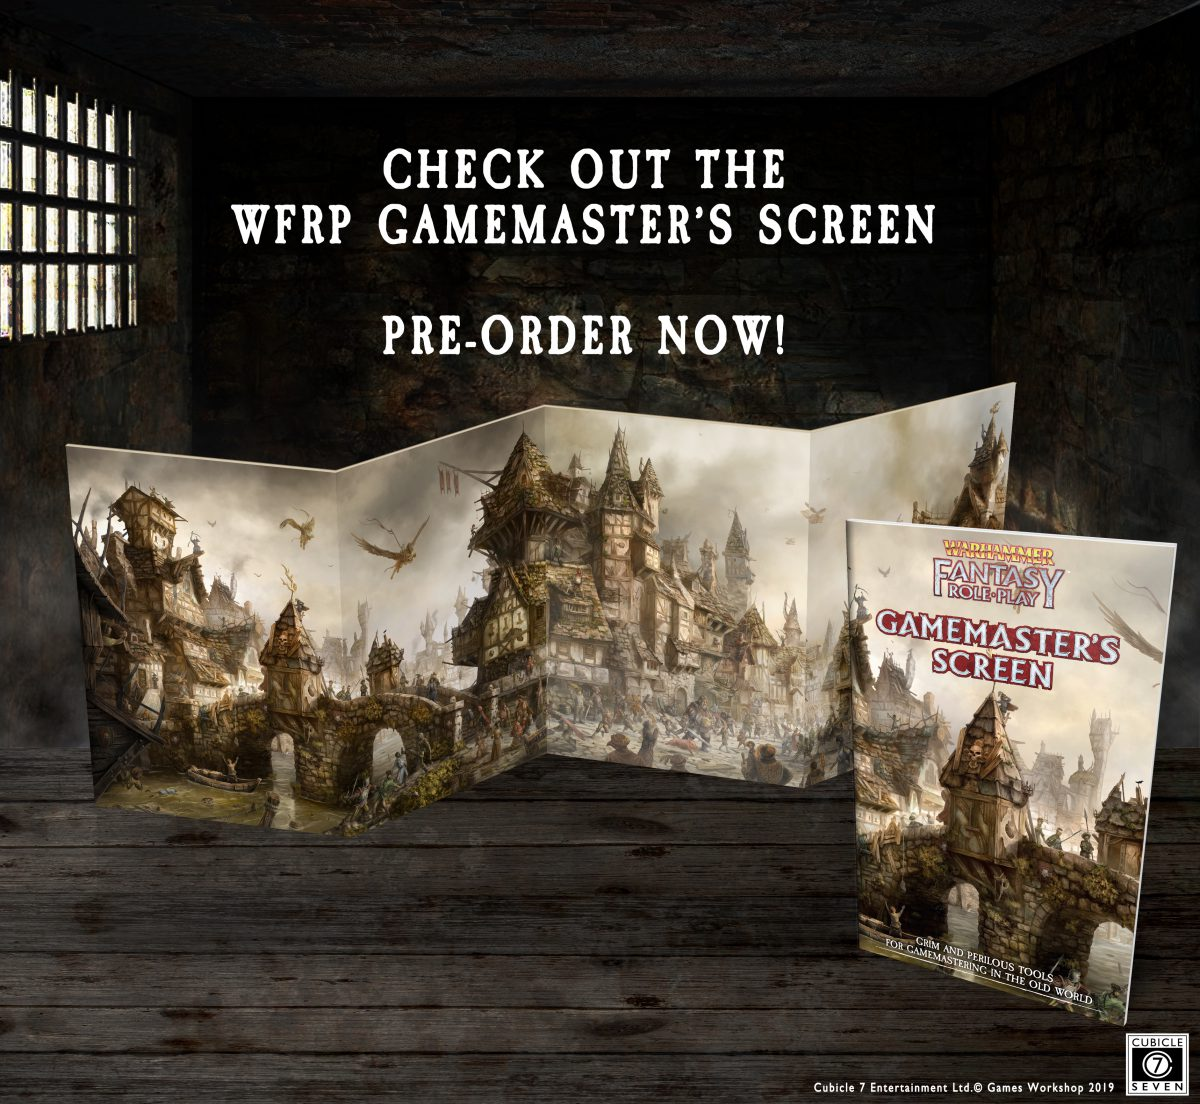 The Gamemaster's Screen and Gamemaster's Guide